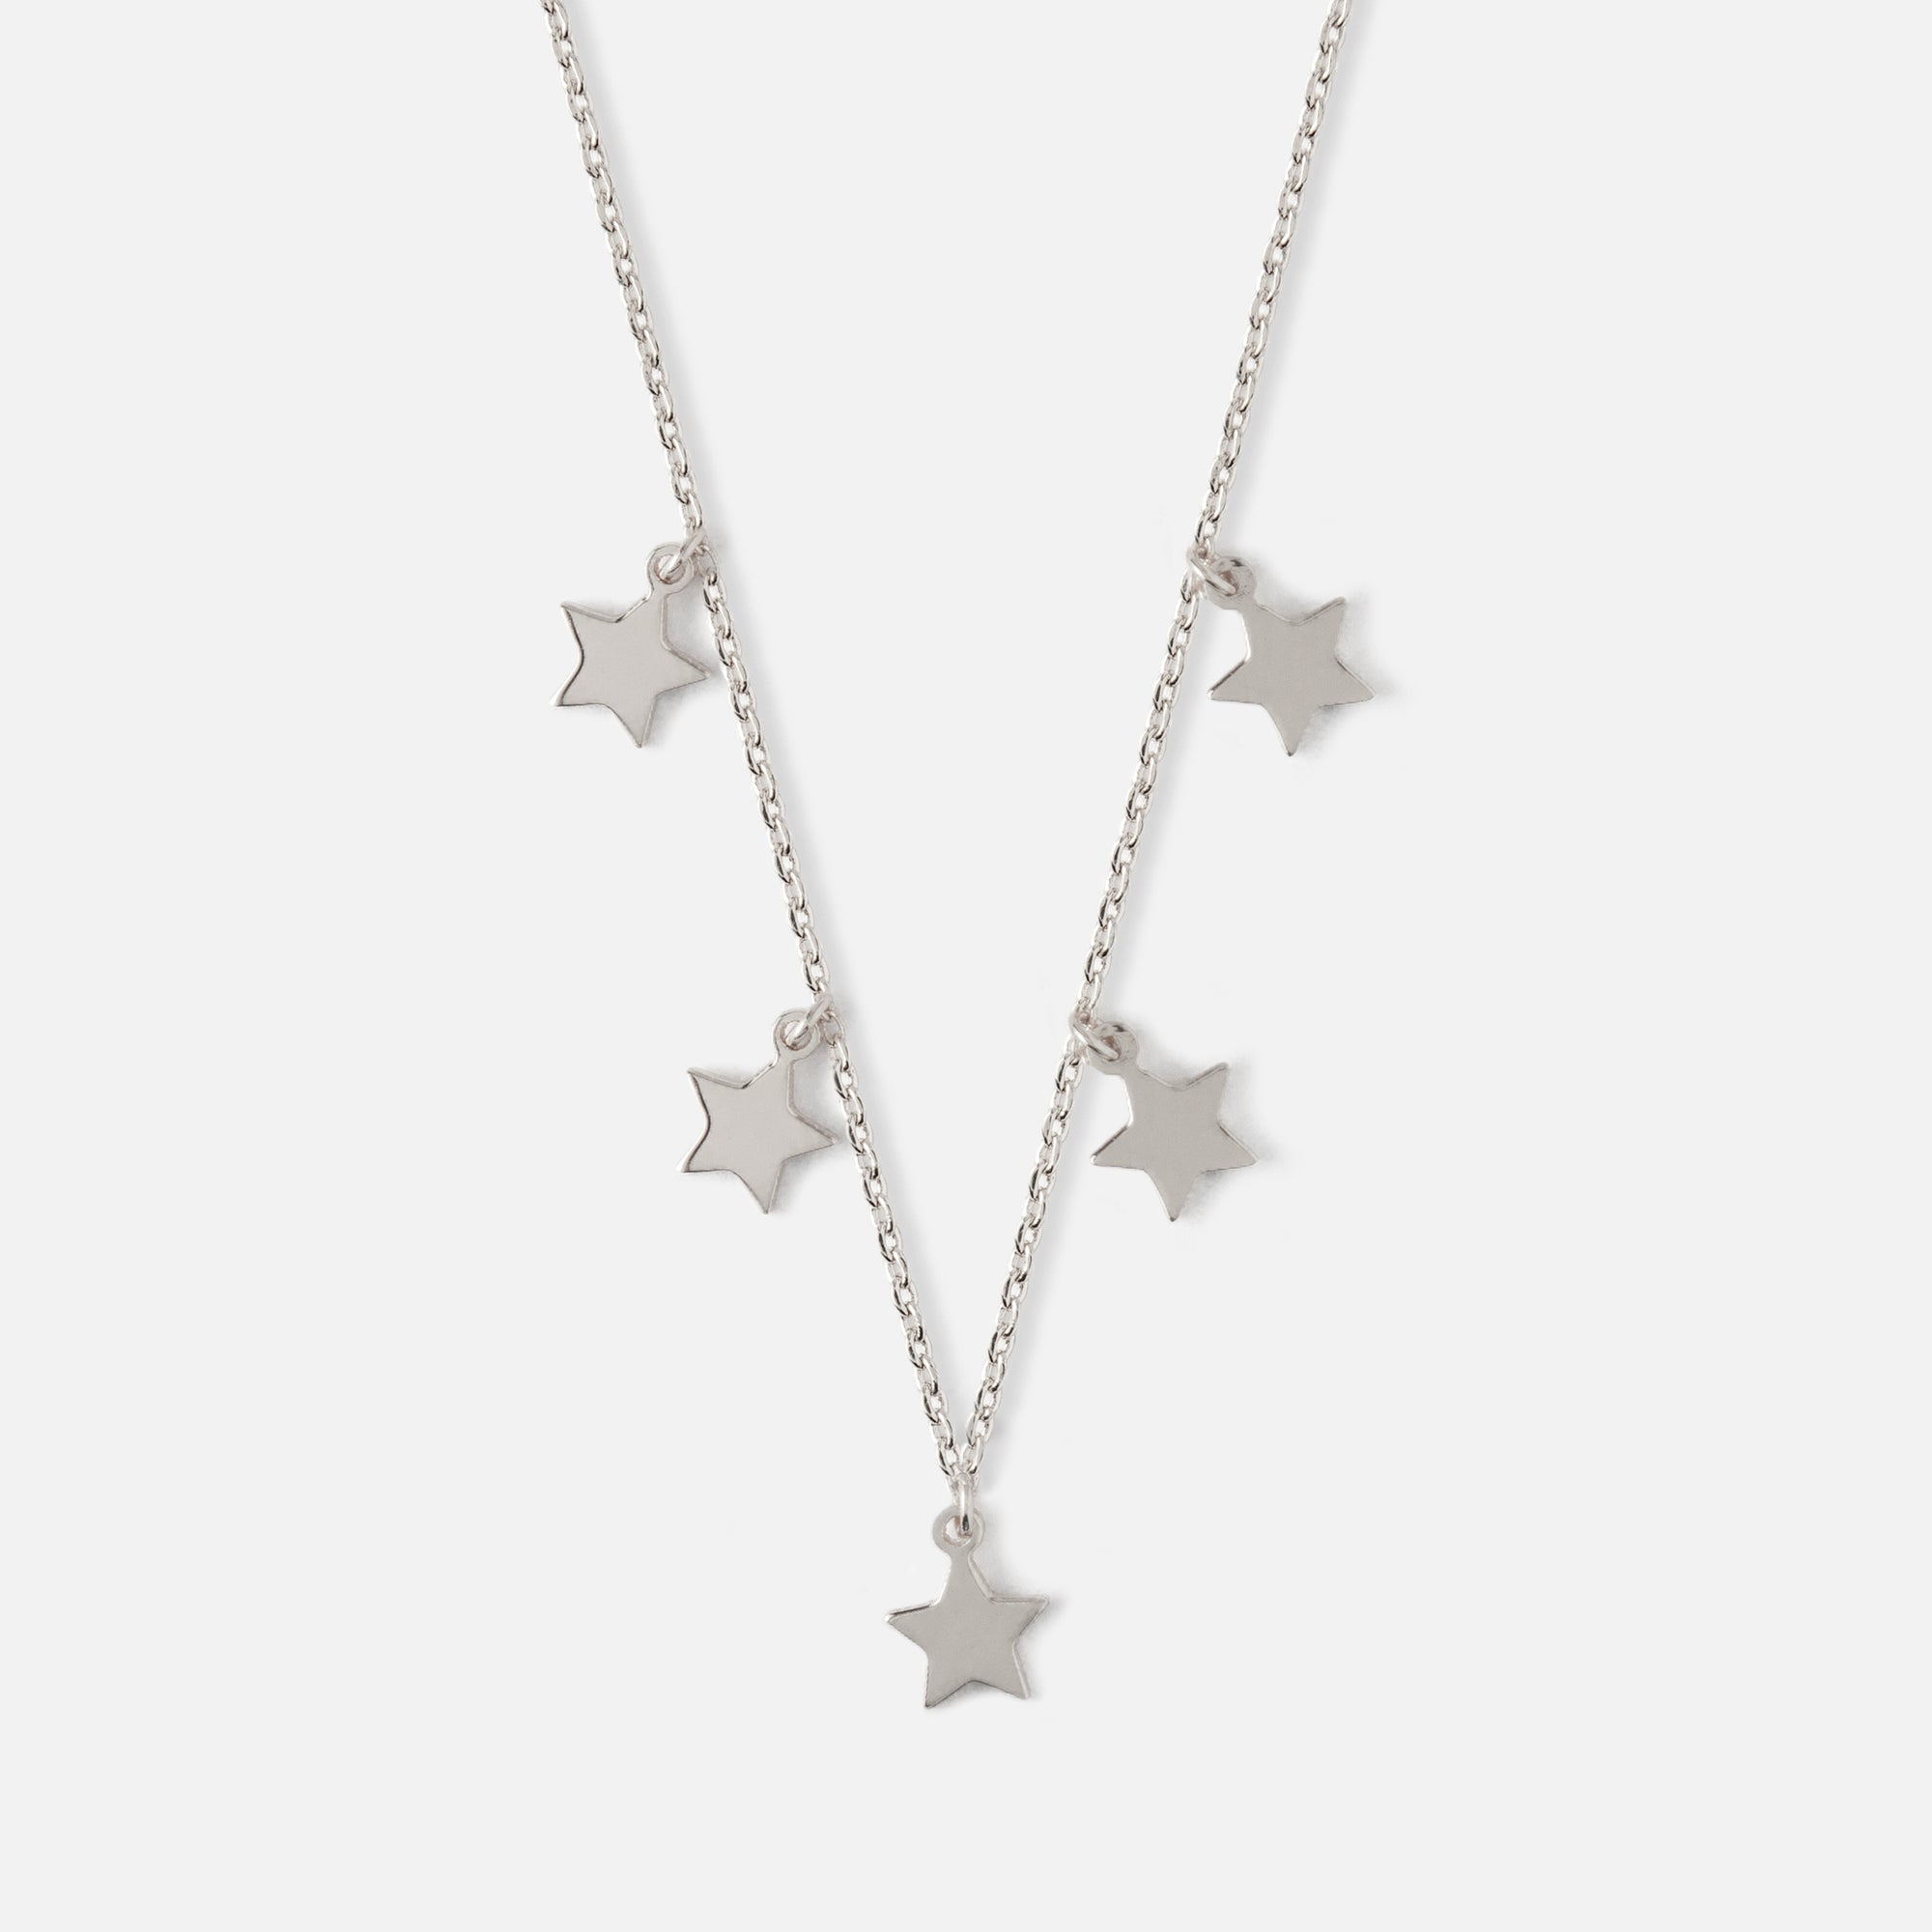 Five Stars Silver Necklace